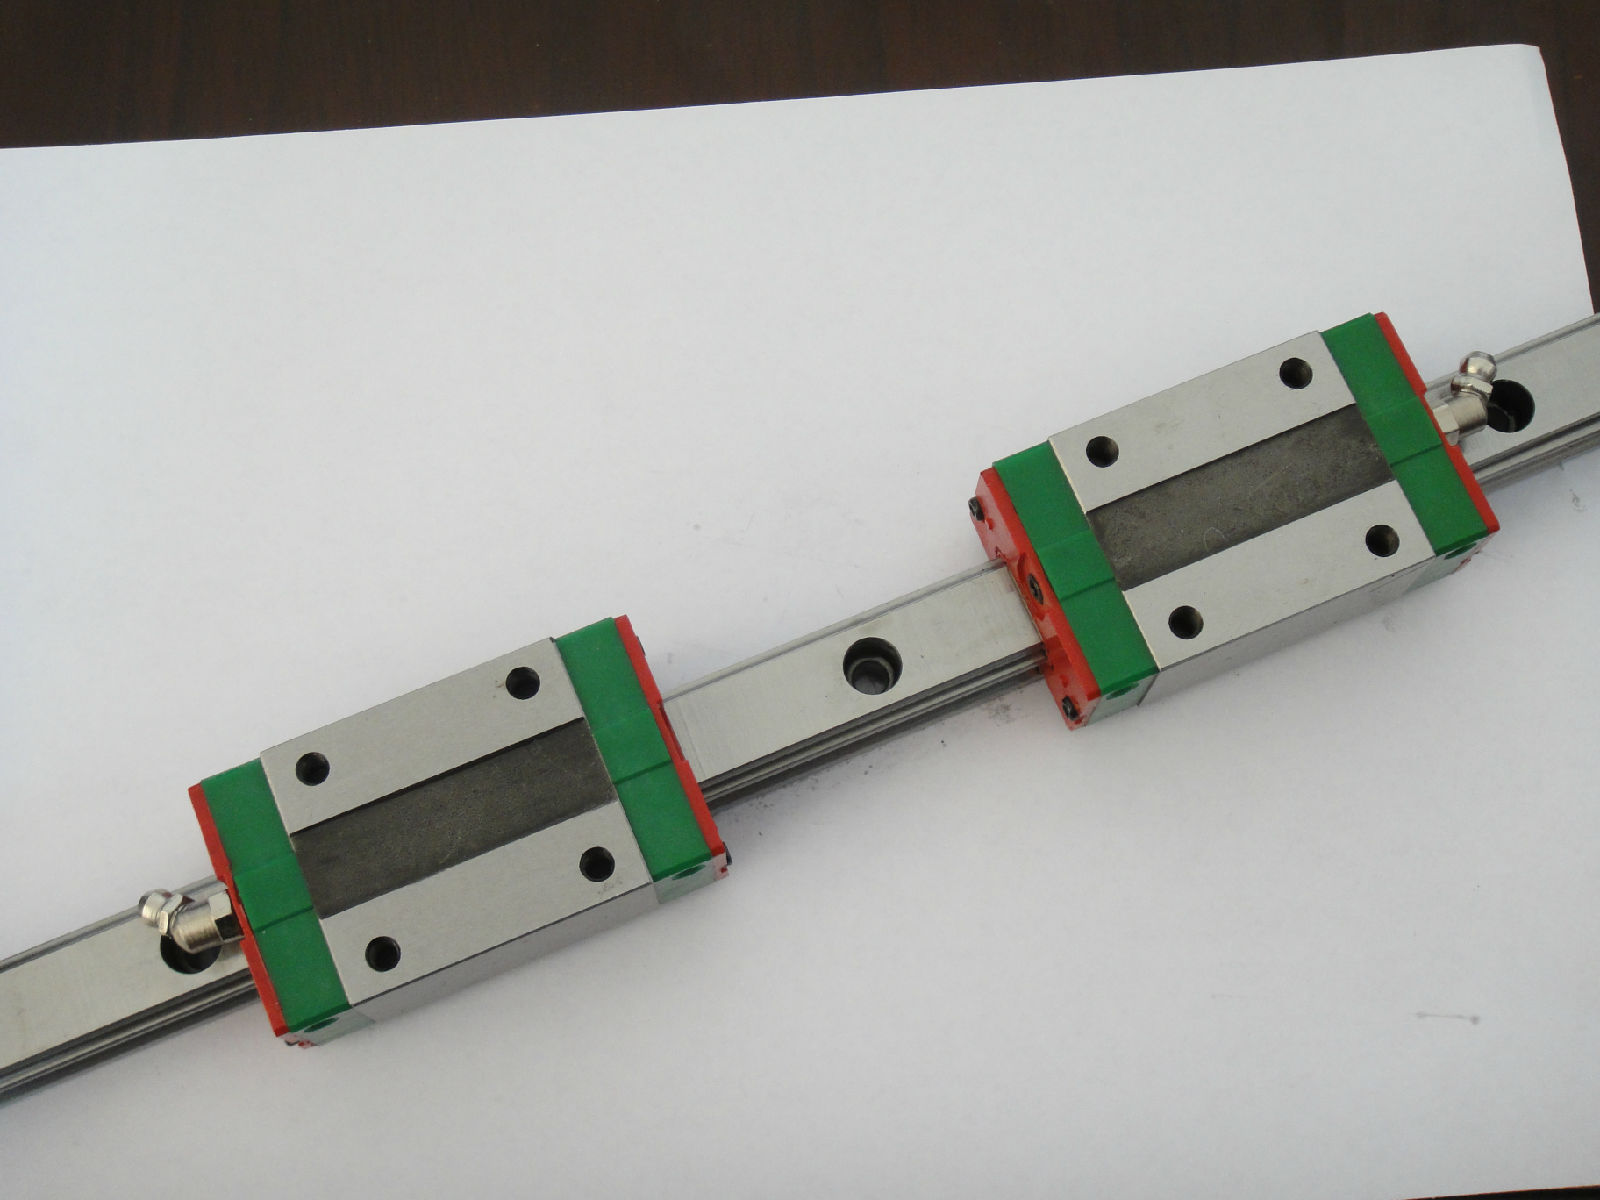 CNC HIWIN HGR25-900MM Rail linear guide from taiwan free shipping to argentina 2 pcs hgr25 3000mm and hgw25c 4pcs hiwin from taiwan linear guide rail